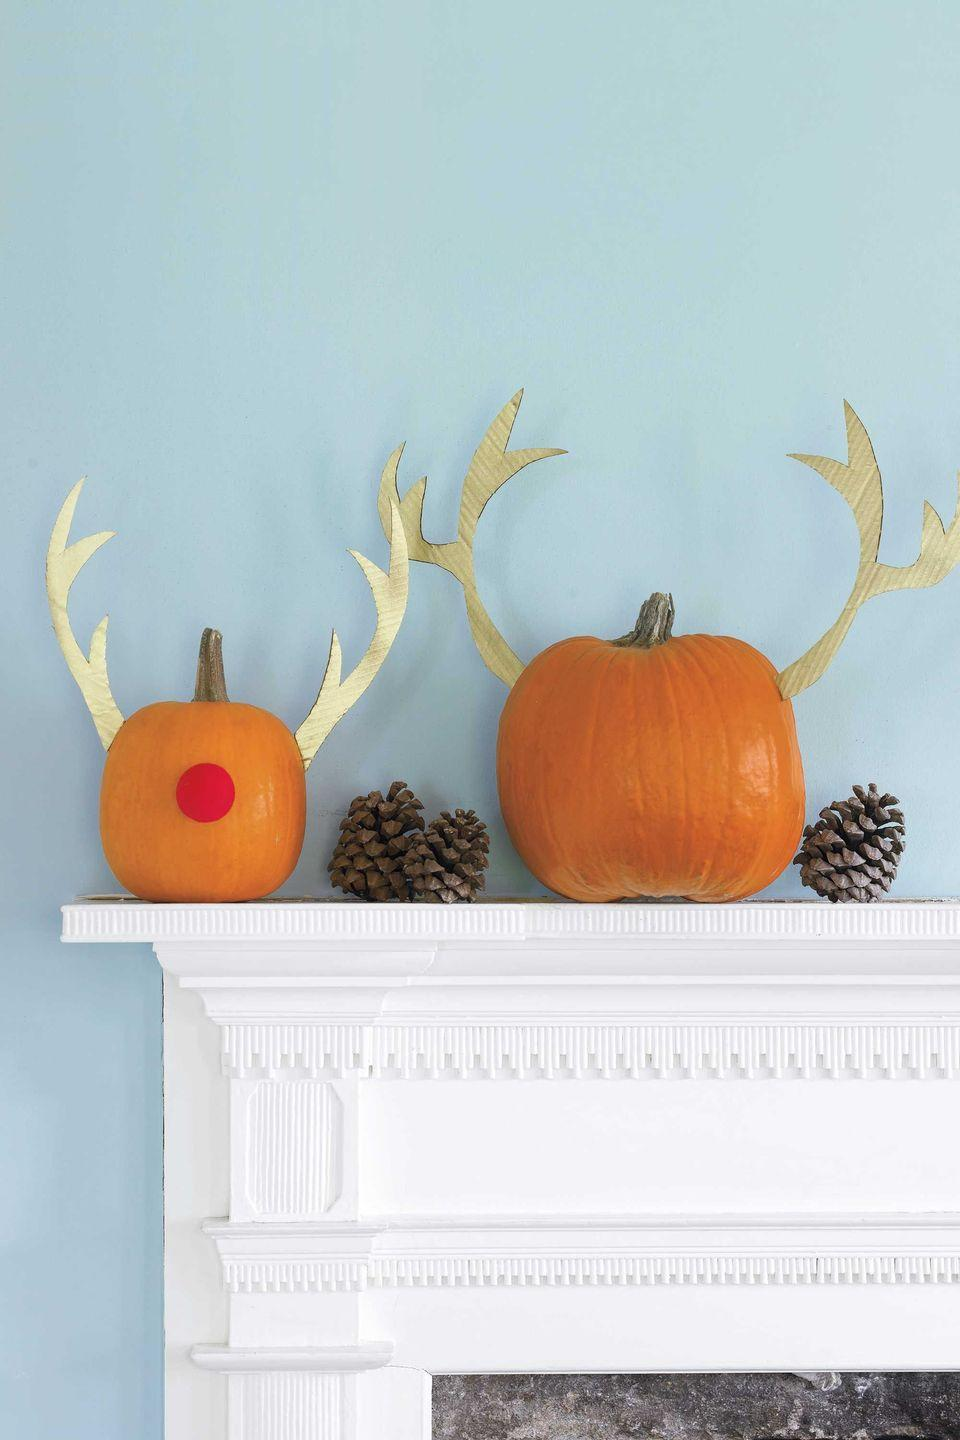 """<p>A mash-up of holidays makes for a very stylish display. Gold antlers and a Rudolph-inspired nose will take your gourds well into winter.</p><p><strong><em><a href=""""https://www.womansday.com/home/crafts-projects/how-to/a5982/craft-project-merry-mix-up-123880/"""" rel=""""nofollow noopener"""" target=""""_blank"""" data-ylk=""""slk:Get the Merry Mix-Up tutorial."""" class=""""link rapid-noclick-resp"""">Get the Merry Mix-Up tutorial.</a></em></strong></p>"""